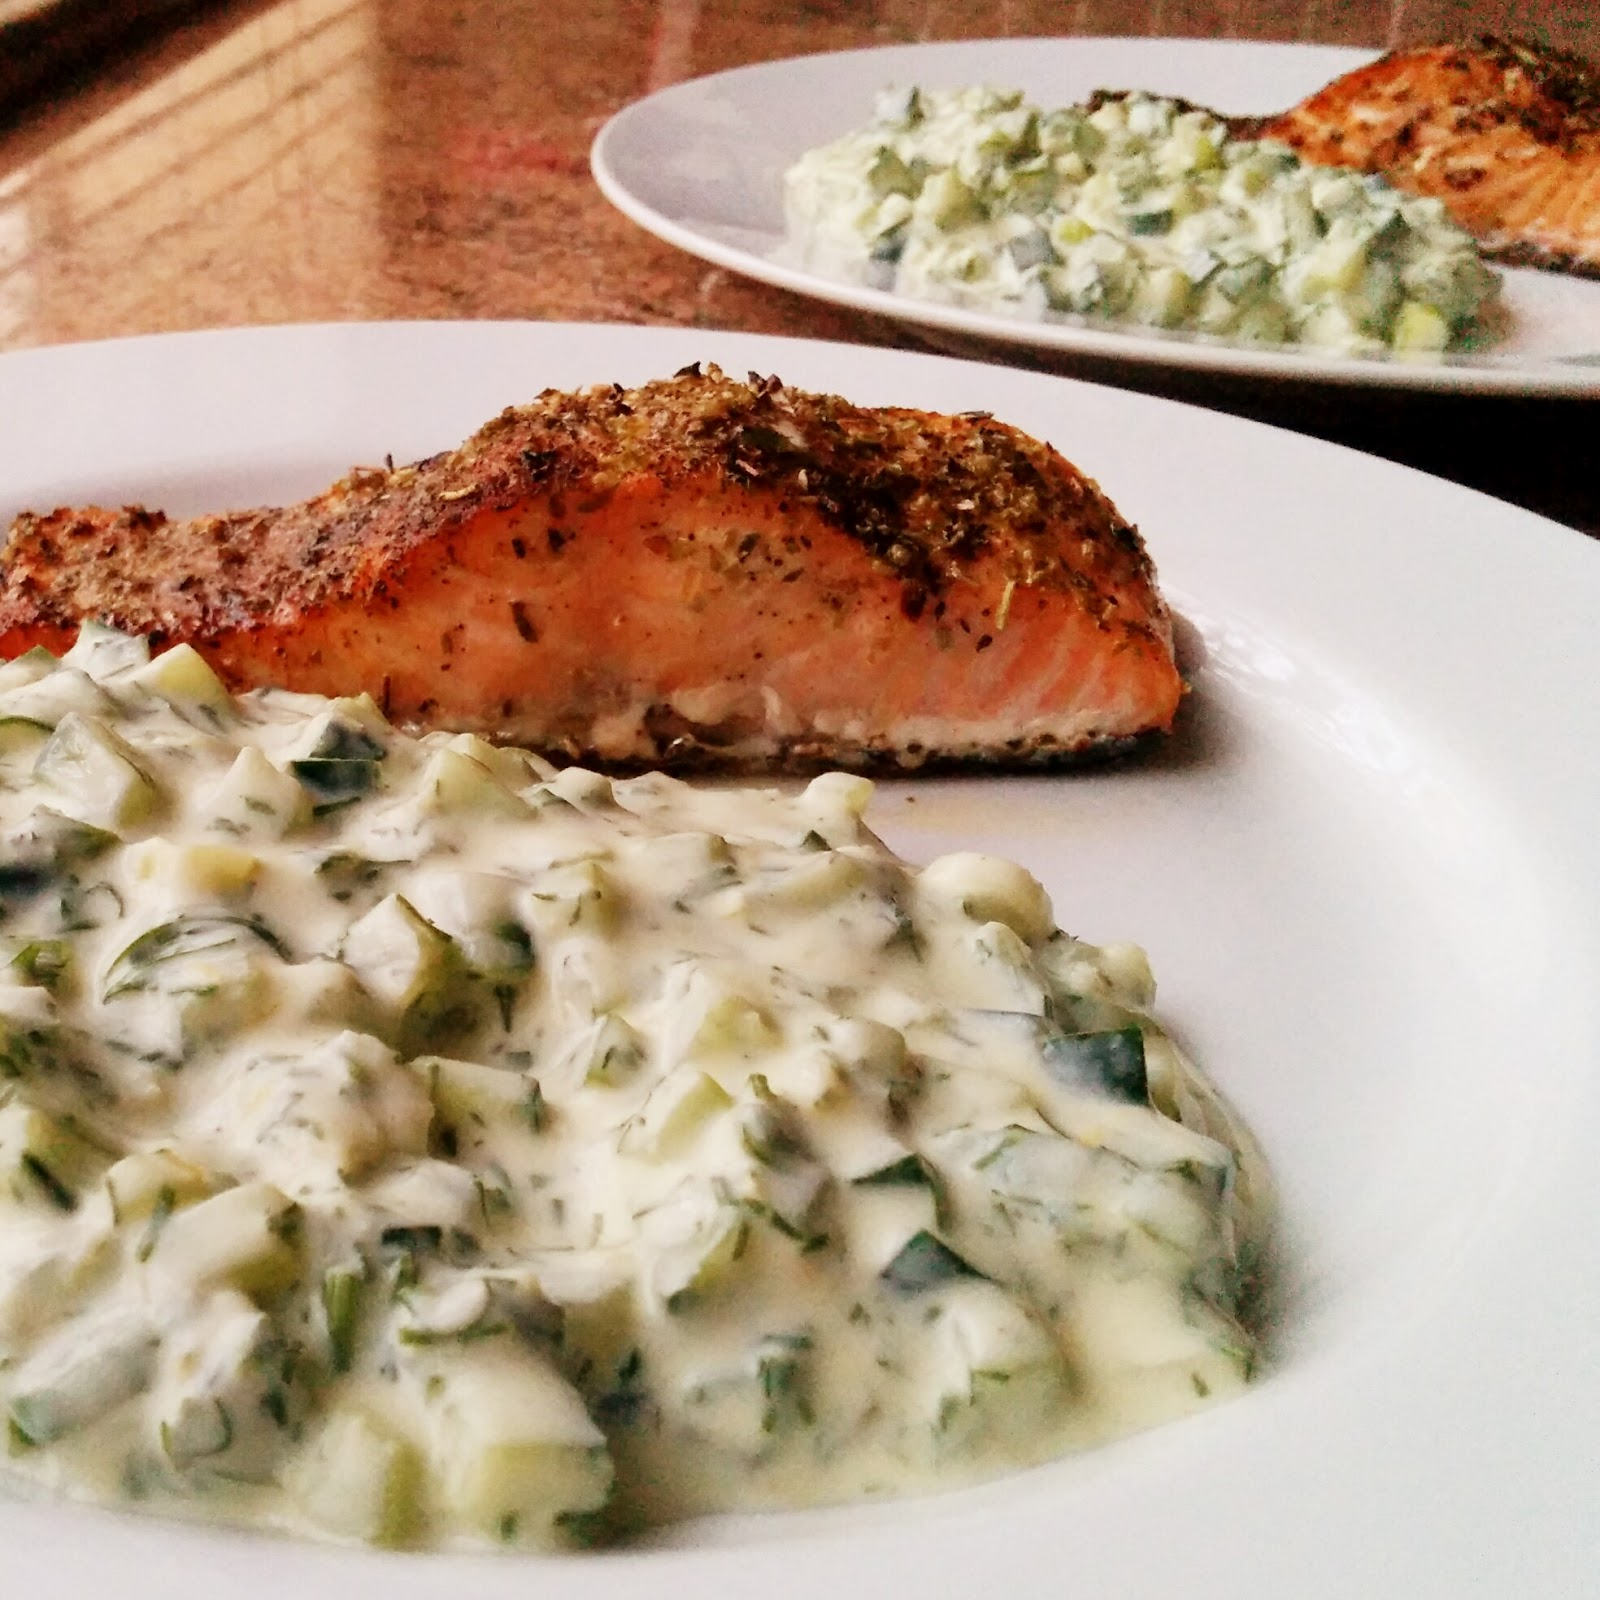 HELENA BOURMAULT in the kitchen: Roasted Salmon with Dill ...